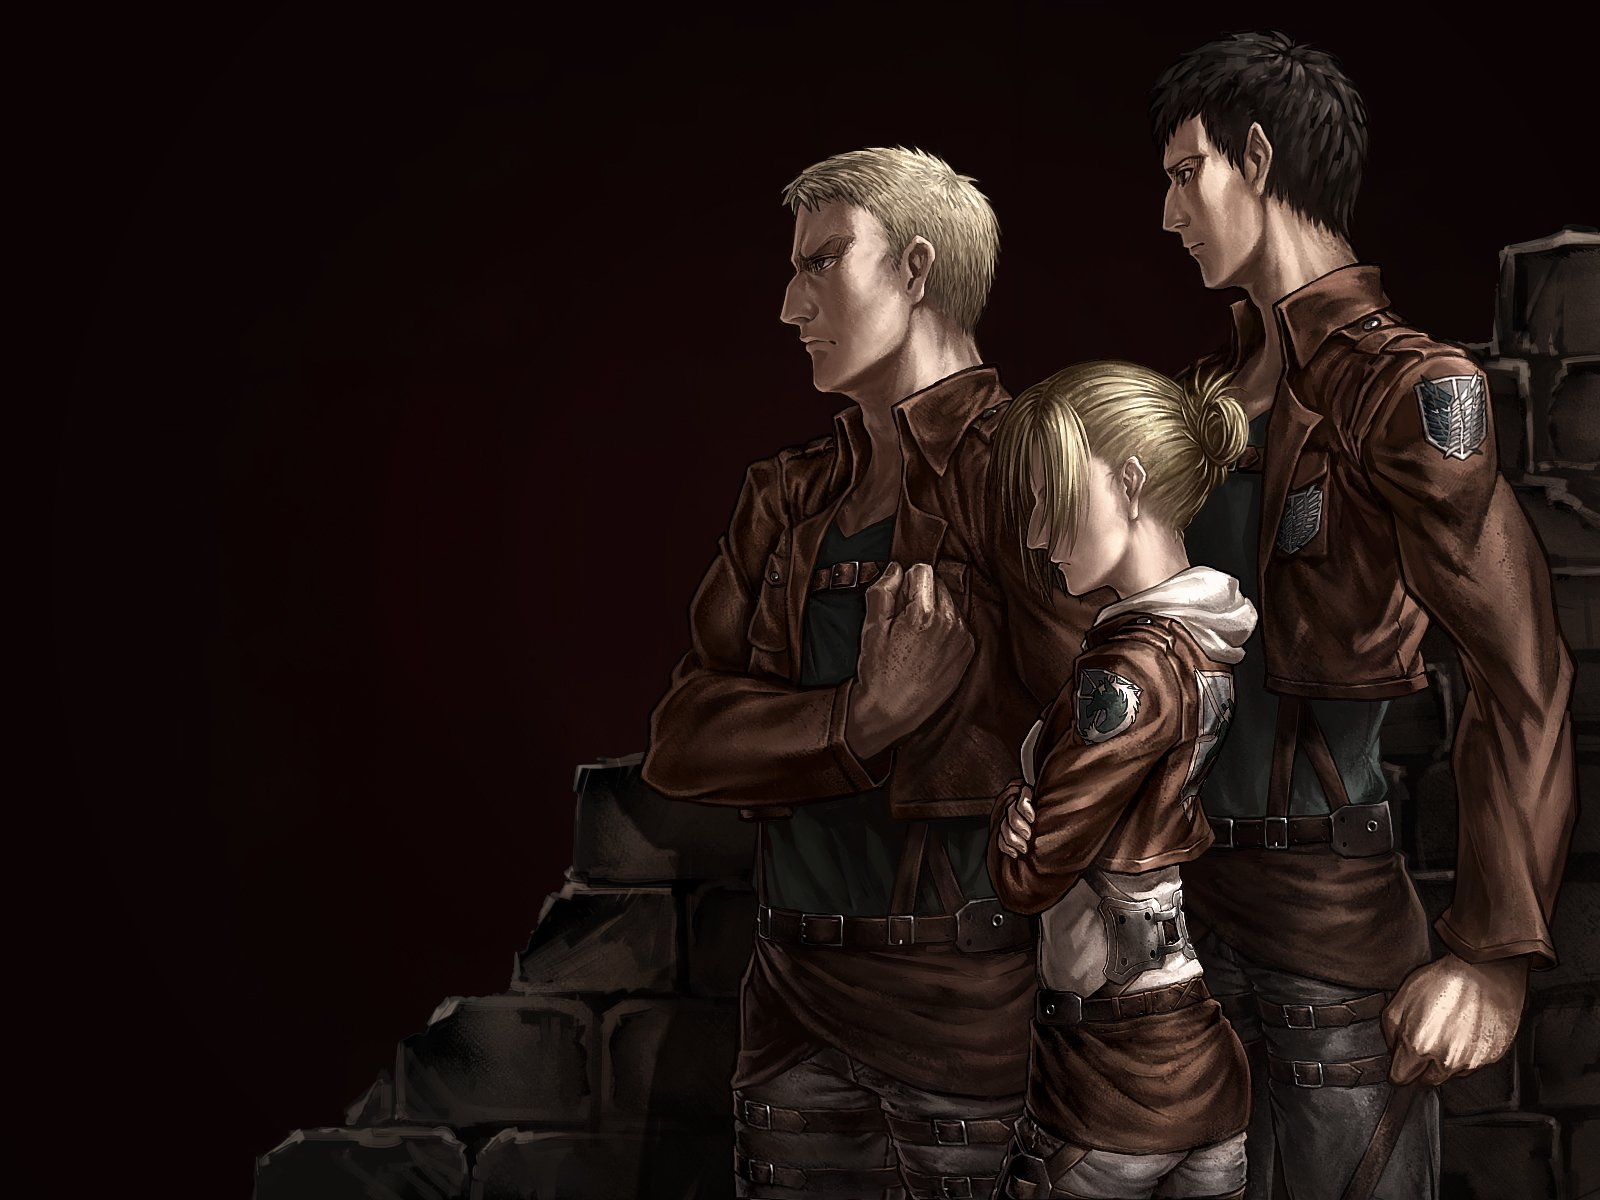 Anime - Attack On Titan  Bertolt Hoover Annie Leonhart Reiner Braun Wallpaper